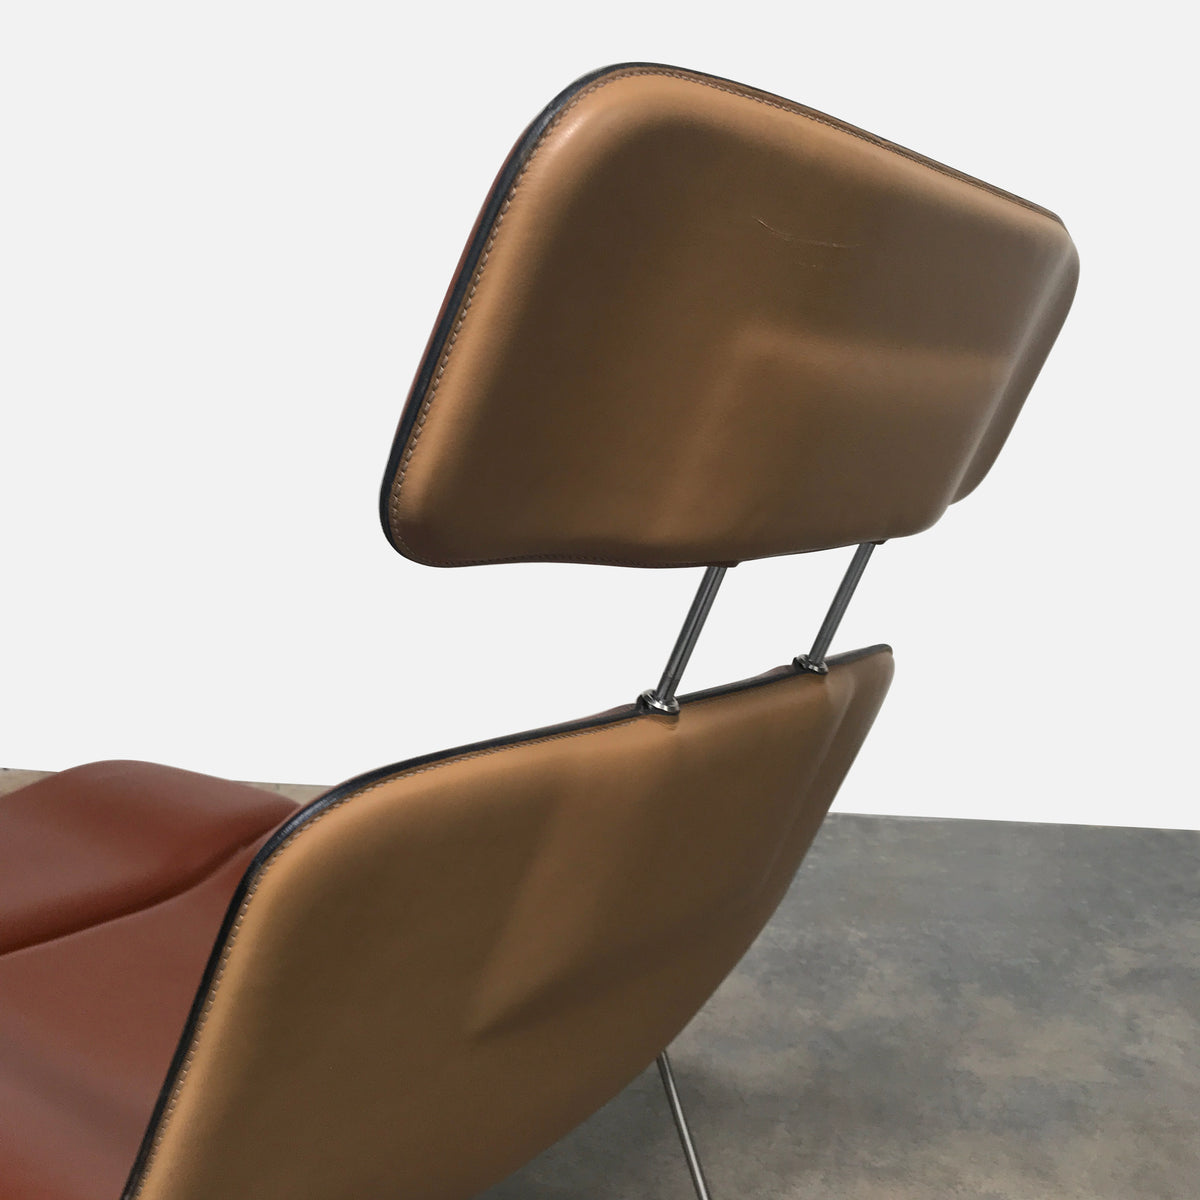 Cappellini Spring Leather Lounge Chair by Erwan Bouroullec